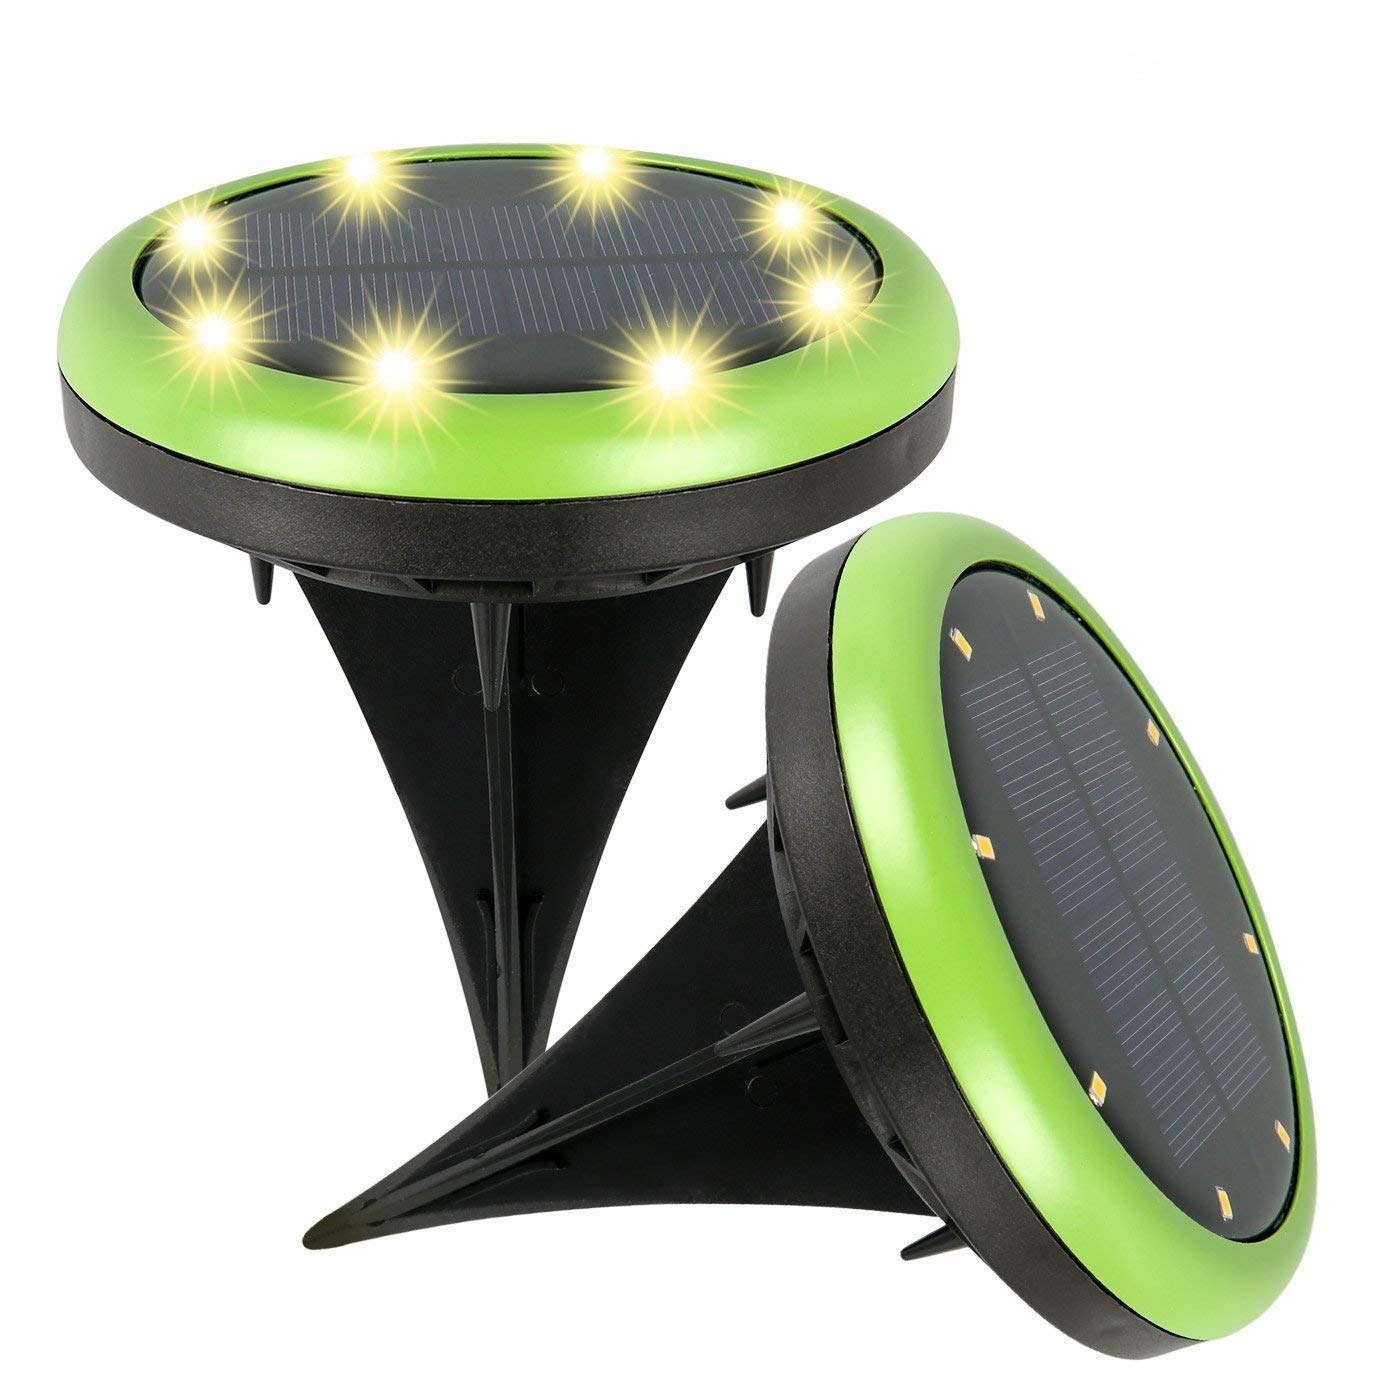 balight solar powered disk lights for home outdoor yard metal accent table driveway lawn pathway decoration led waterproof pack cell phones accessories indoor mat brown leather